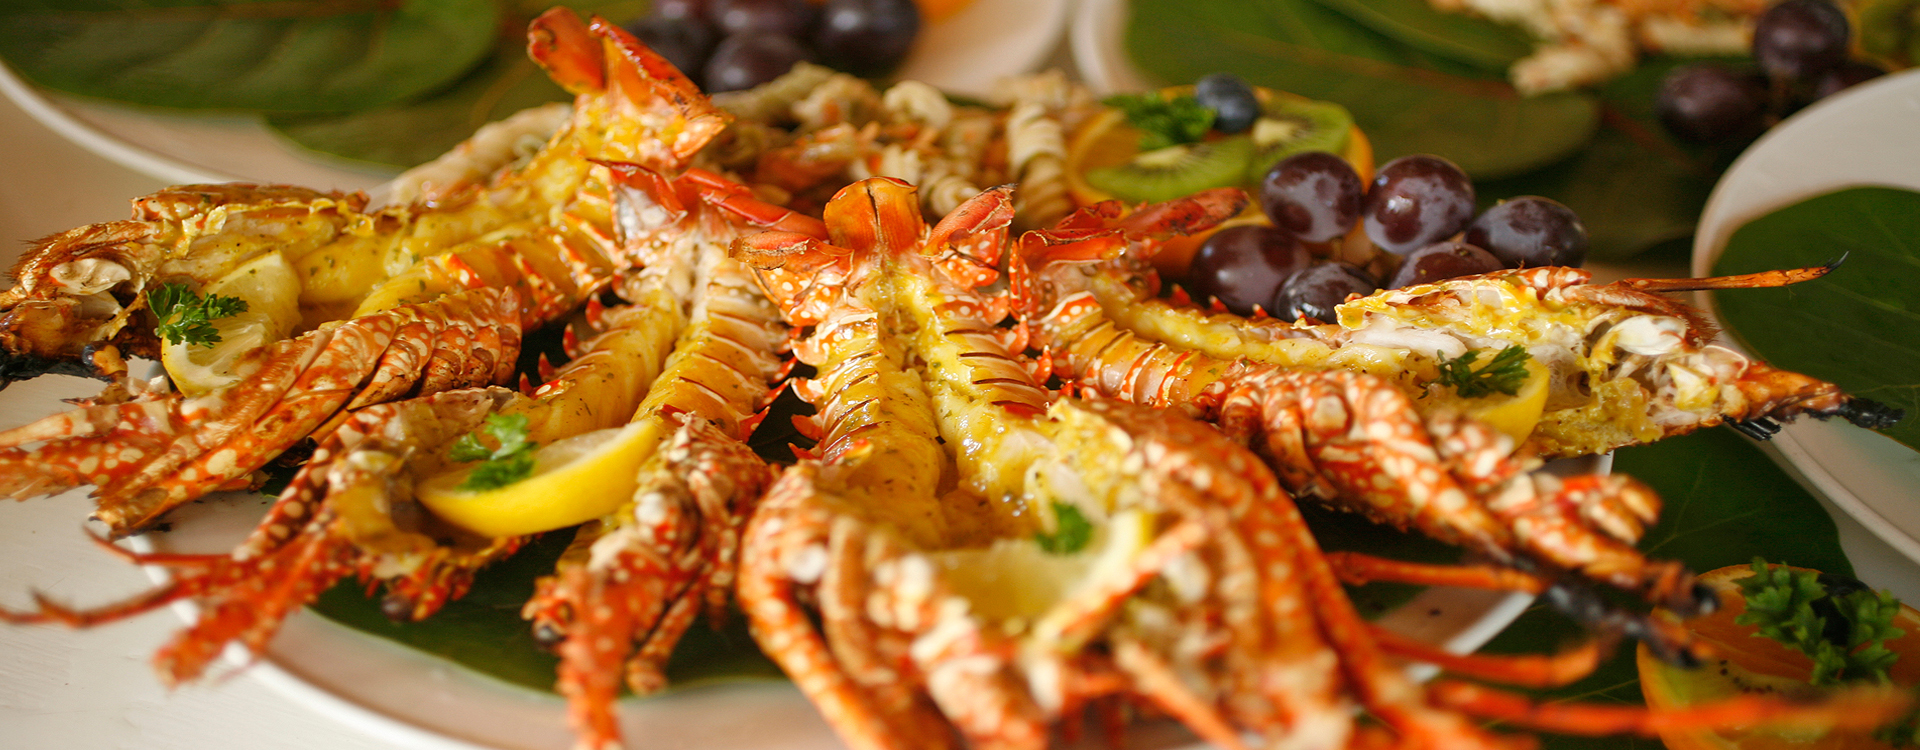 Cerulean serves fresh caught Anguilla seafood.